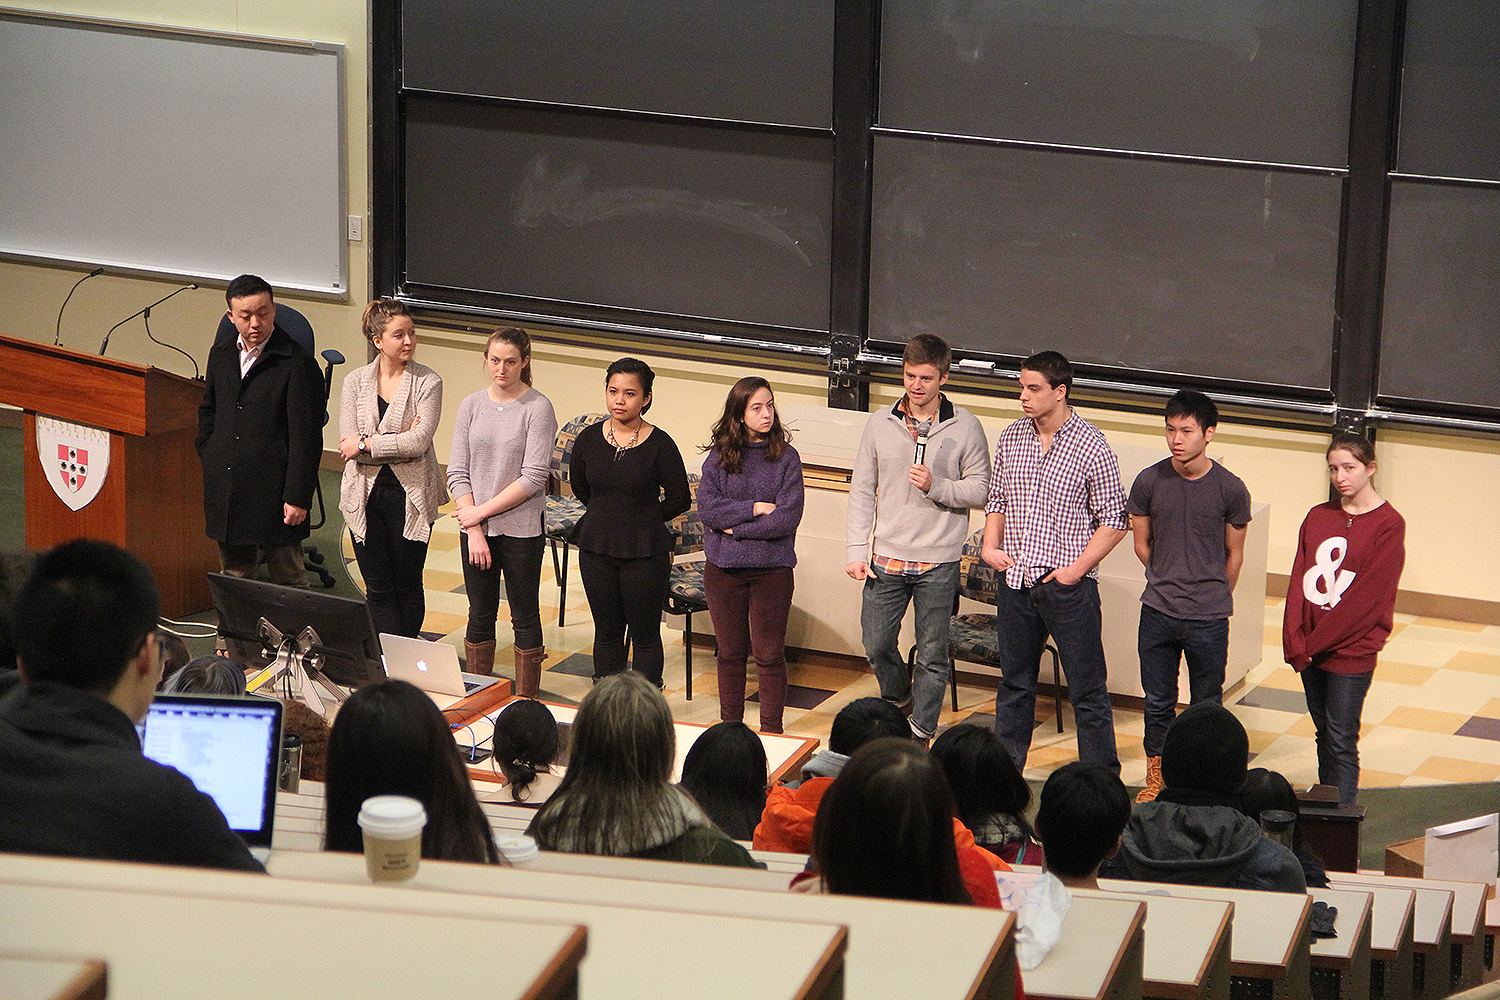 Prior to the poster session, students hosted a seminar, focusing on finding a research group.